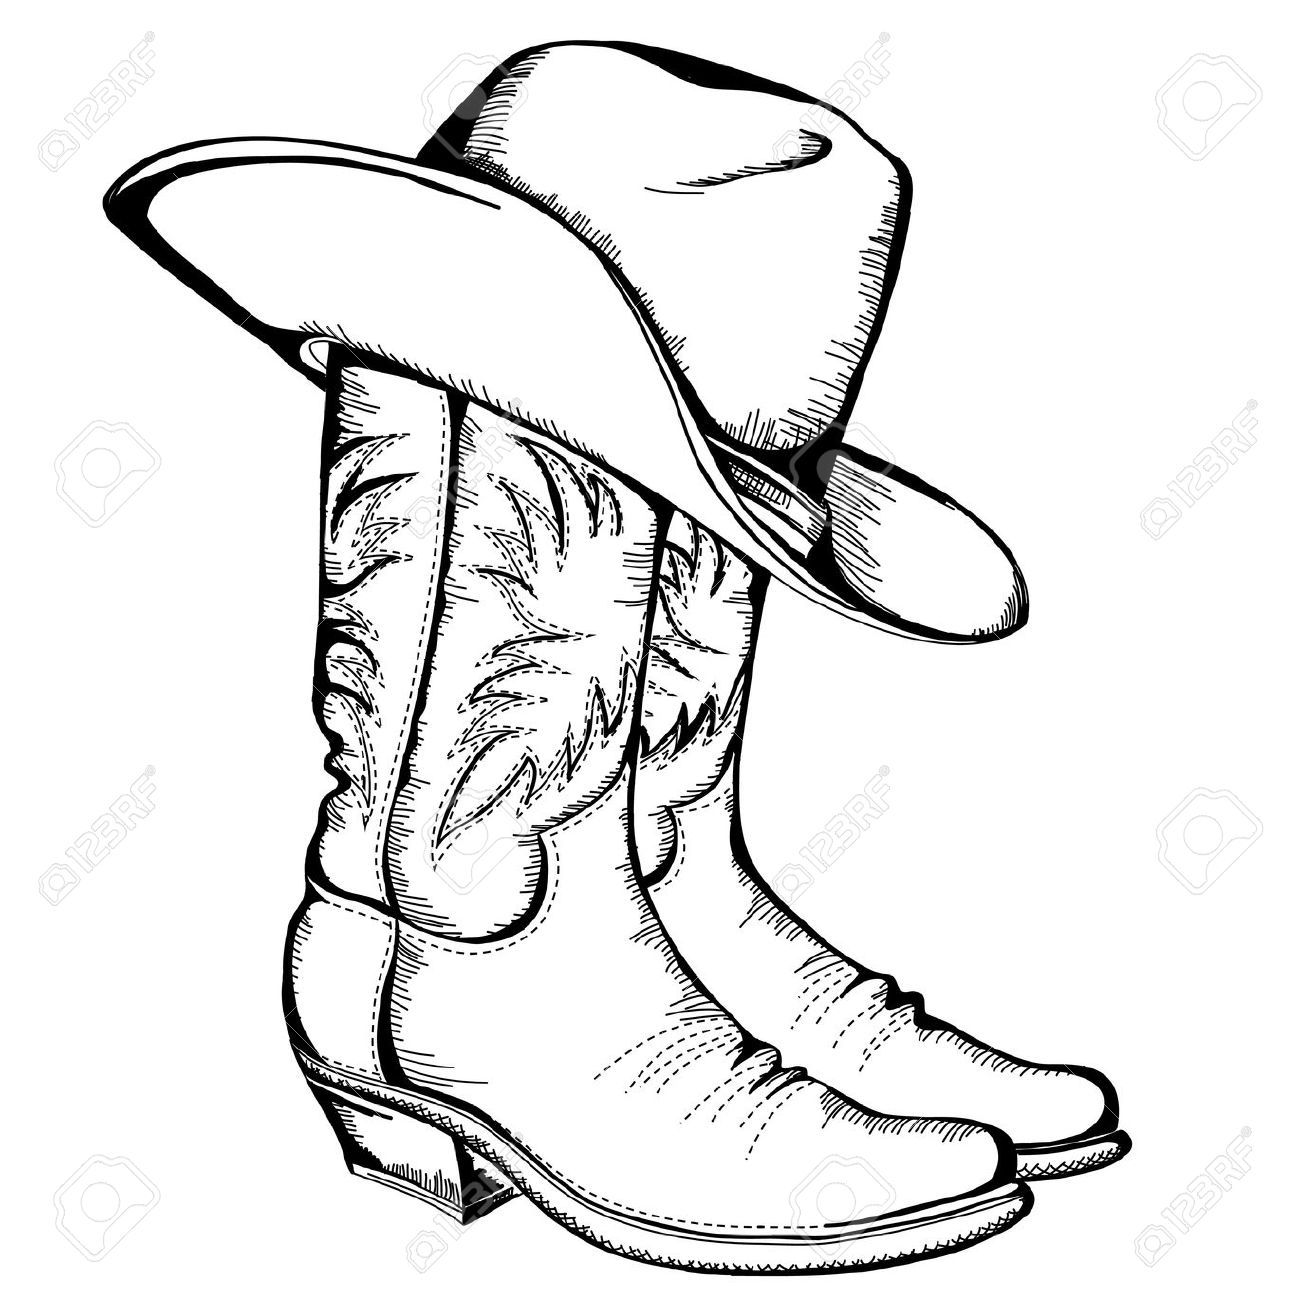 hight resolution of cowboy boots and hat graphic illustration royalty free cliparts vectors and stock illustration image 17229564